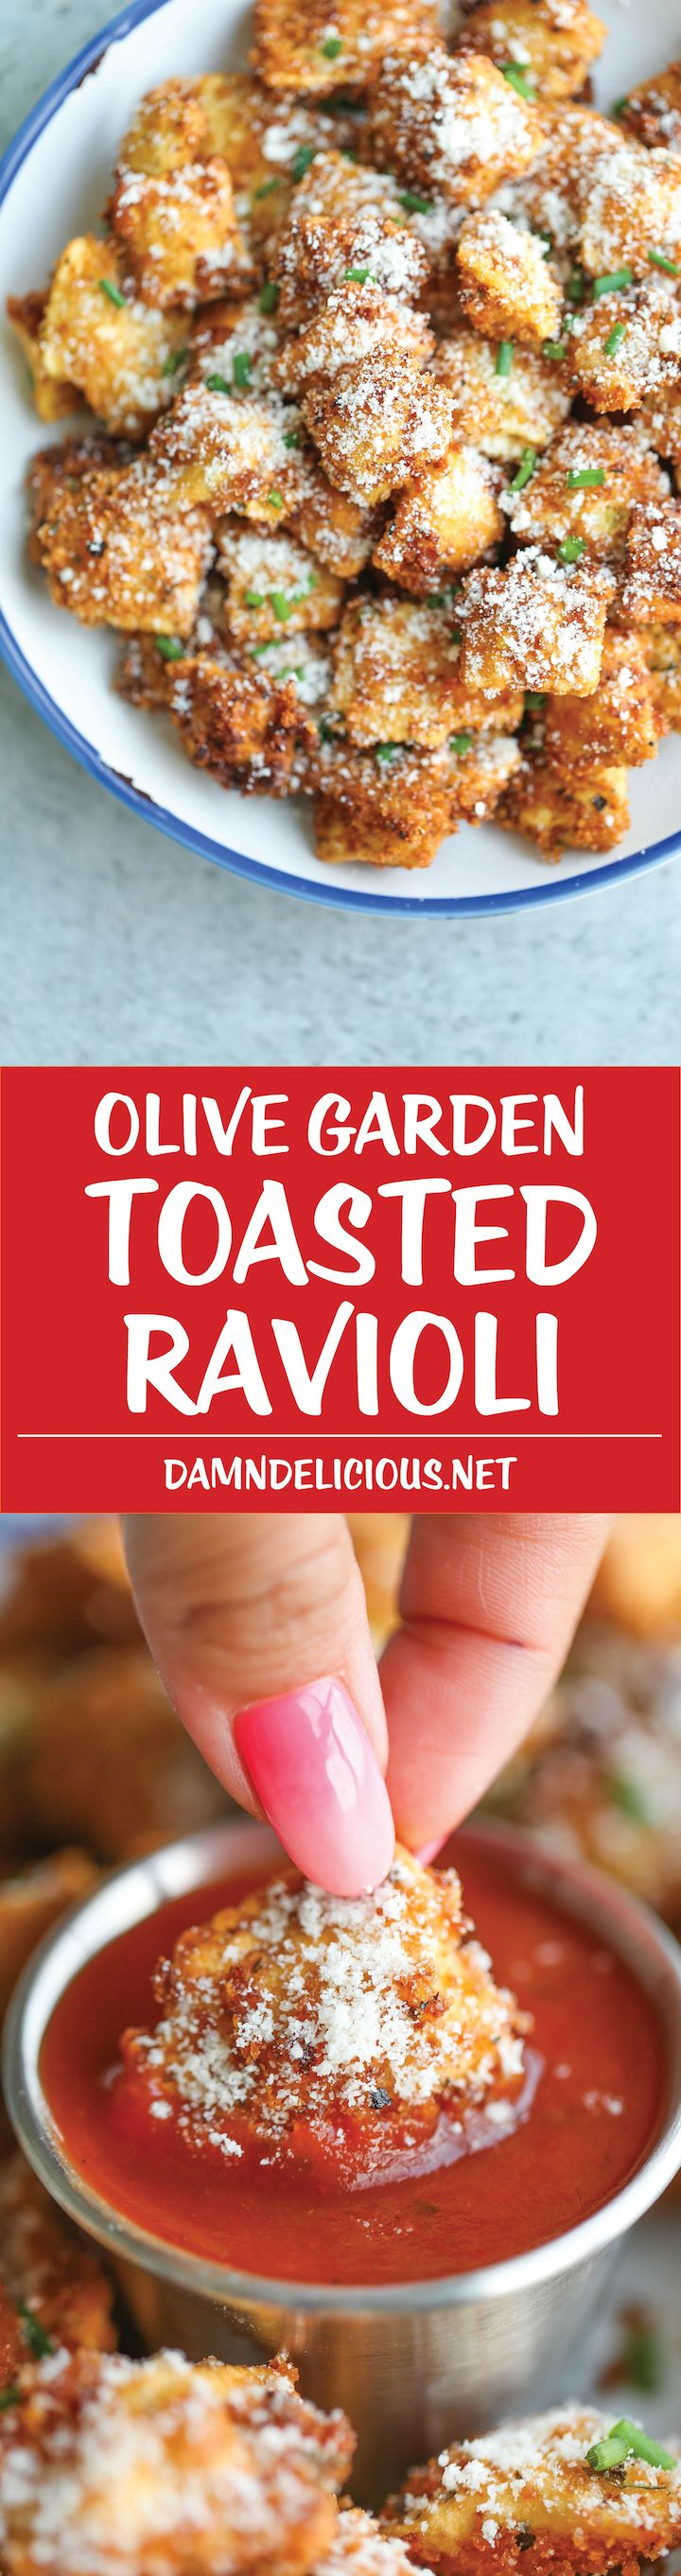 Olive Garden Toasted Ravioli - Everyone' FAVORITE appetizer easily made at home with half the calories and fat - it's healthier and tastier of course!